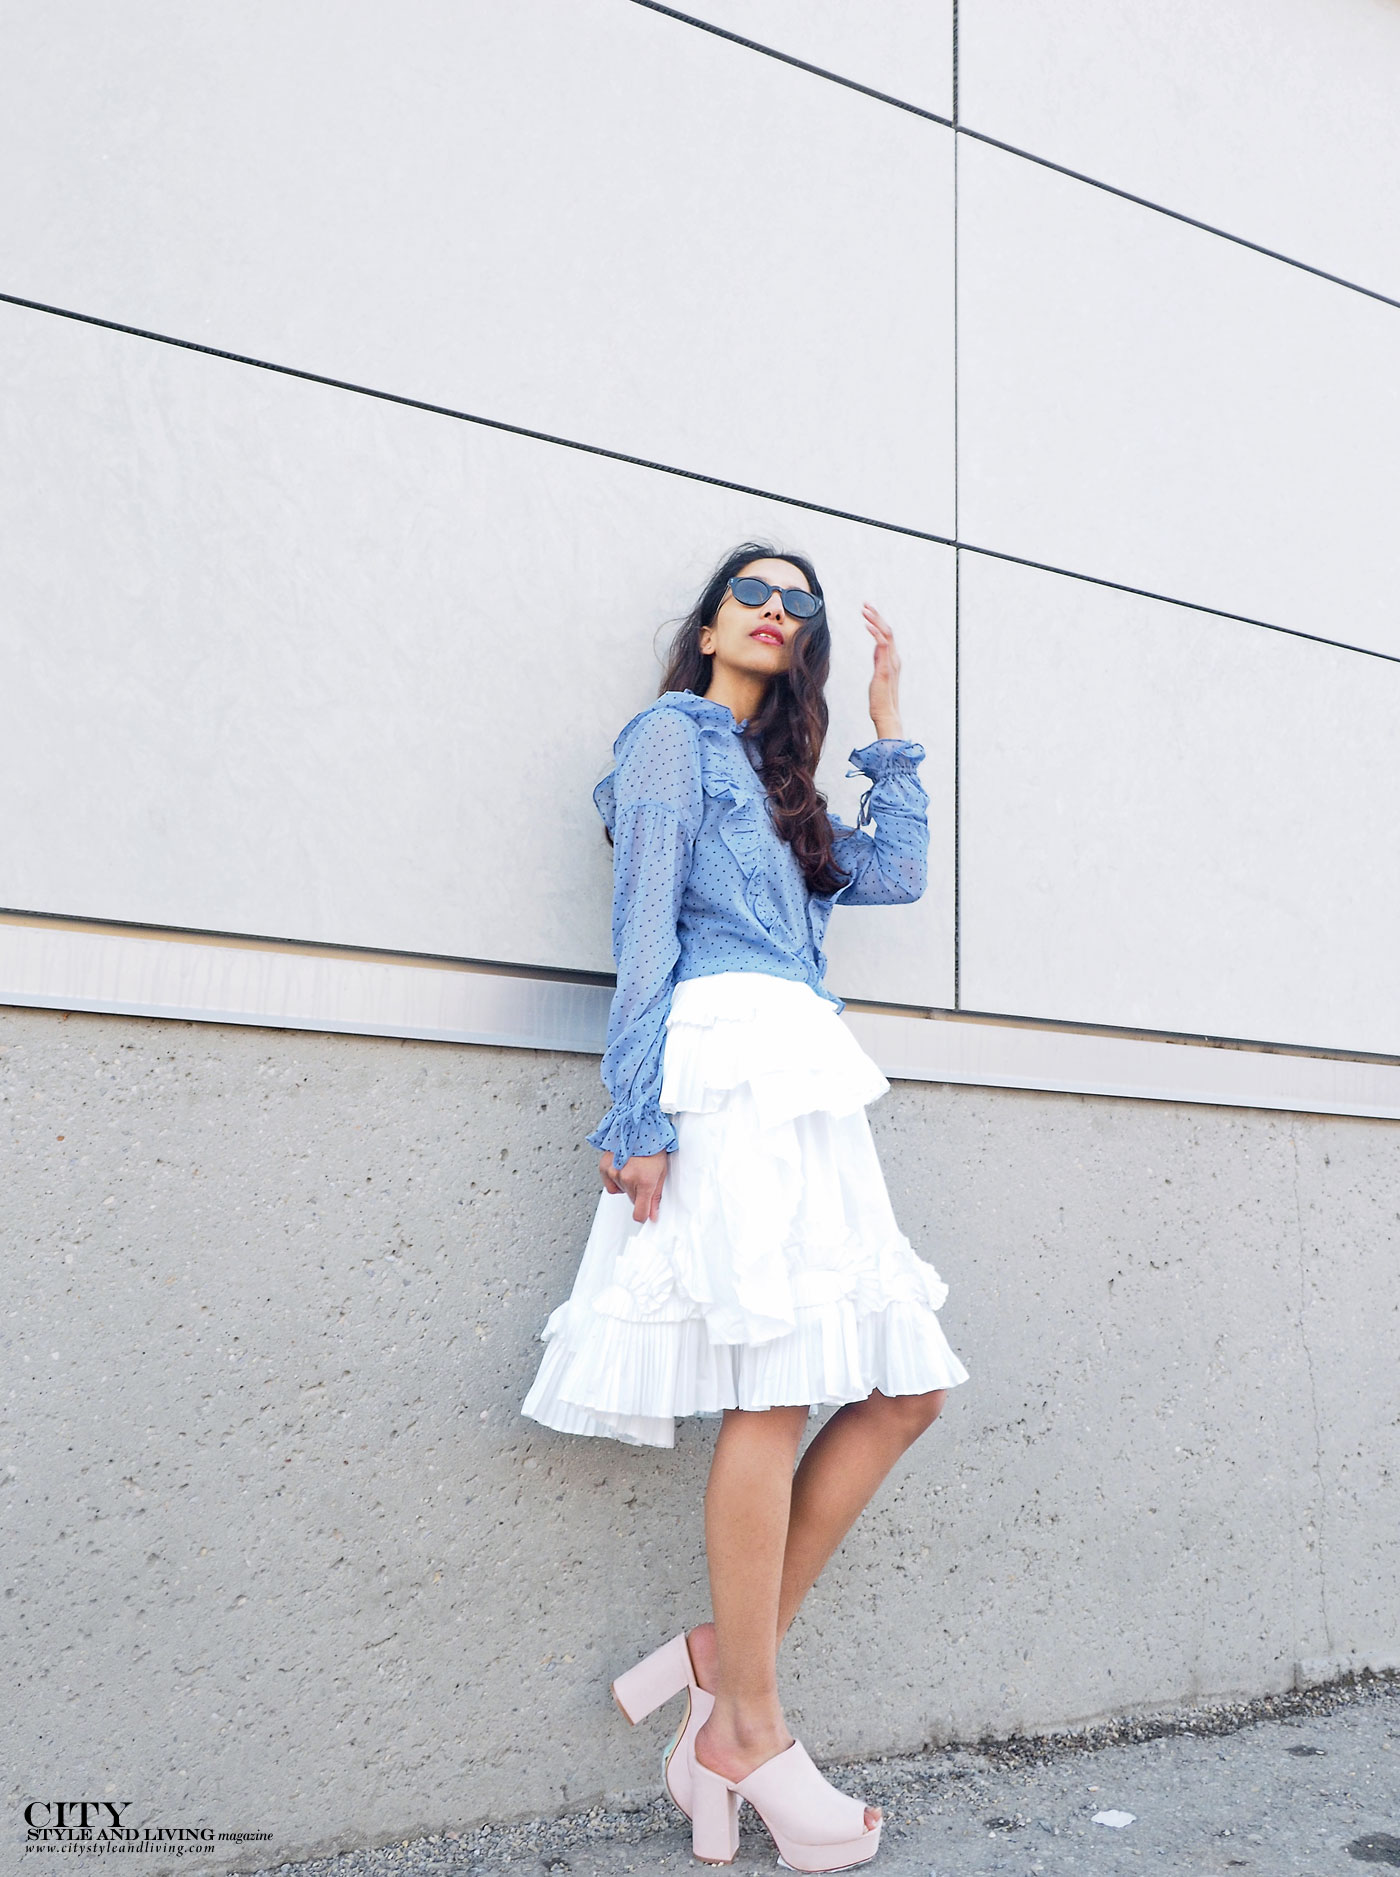 City style and living magazine The Editors Notebook style fashion blogger Shivana Maharaj how to wear frills for spring 2017 calgary